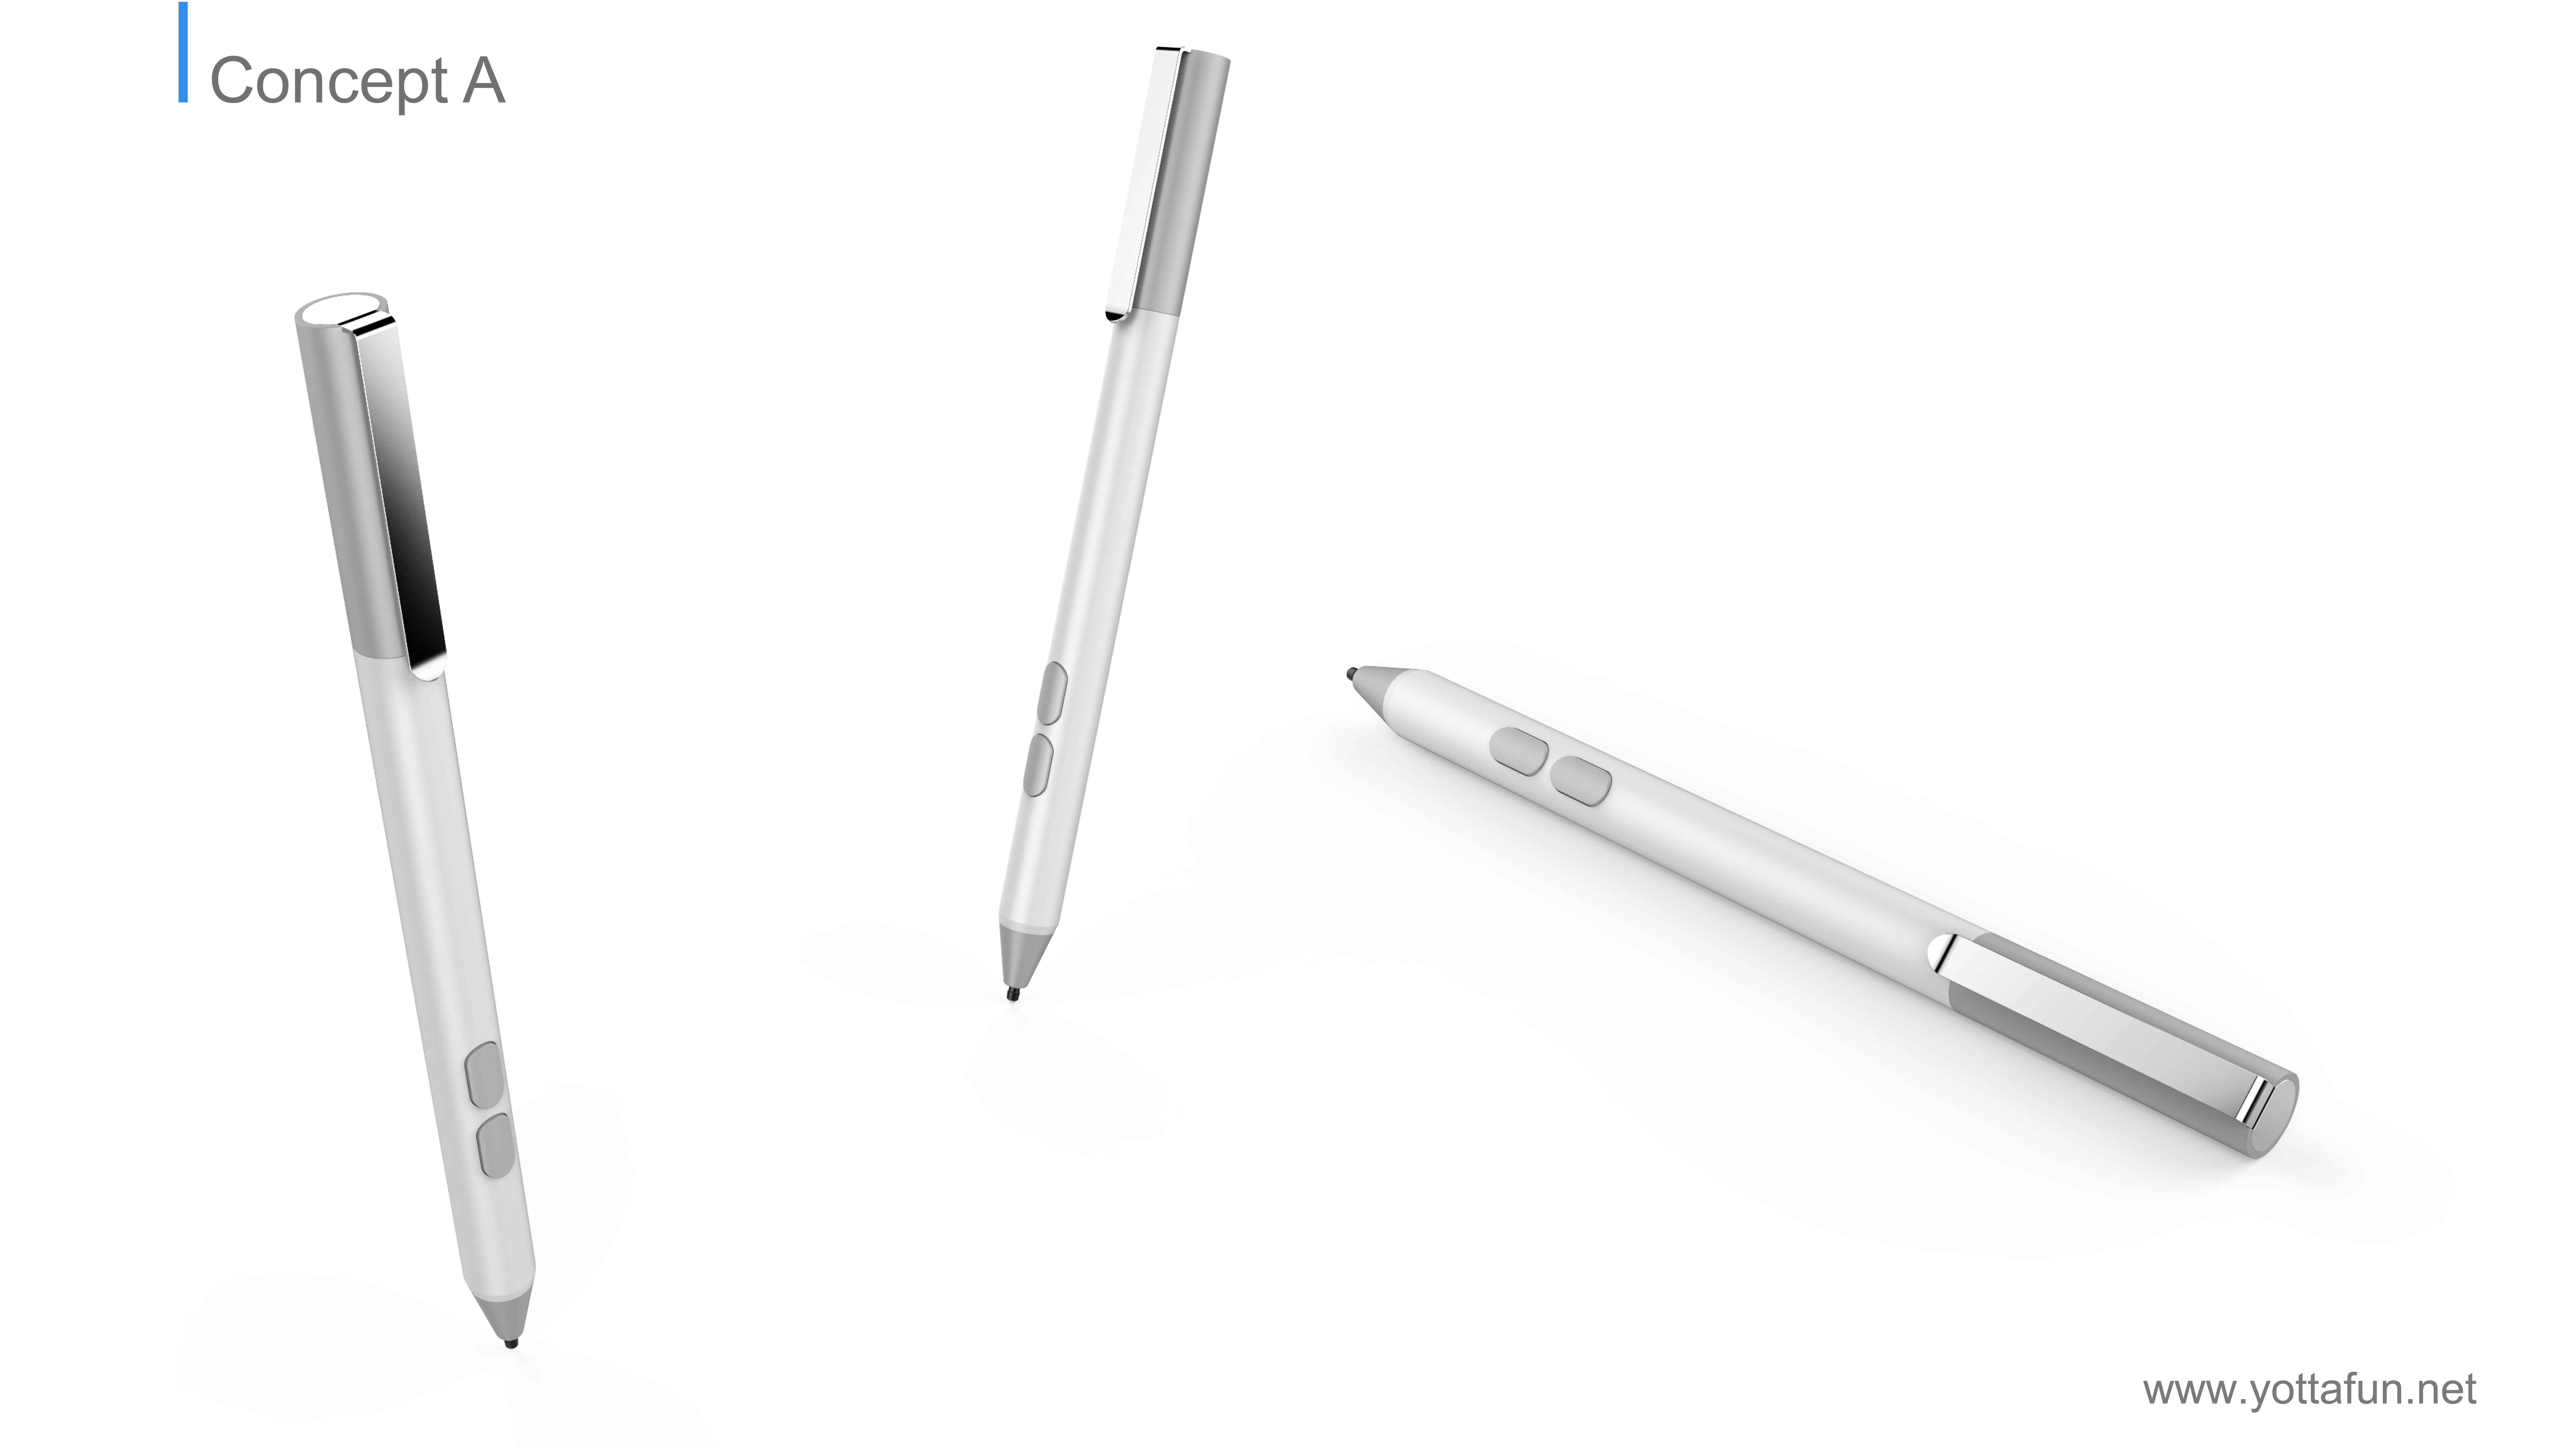 New Mpp Active Stylus Pen With 4096 Pressure Level For